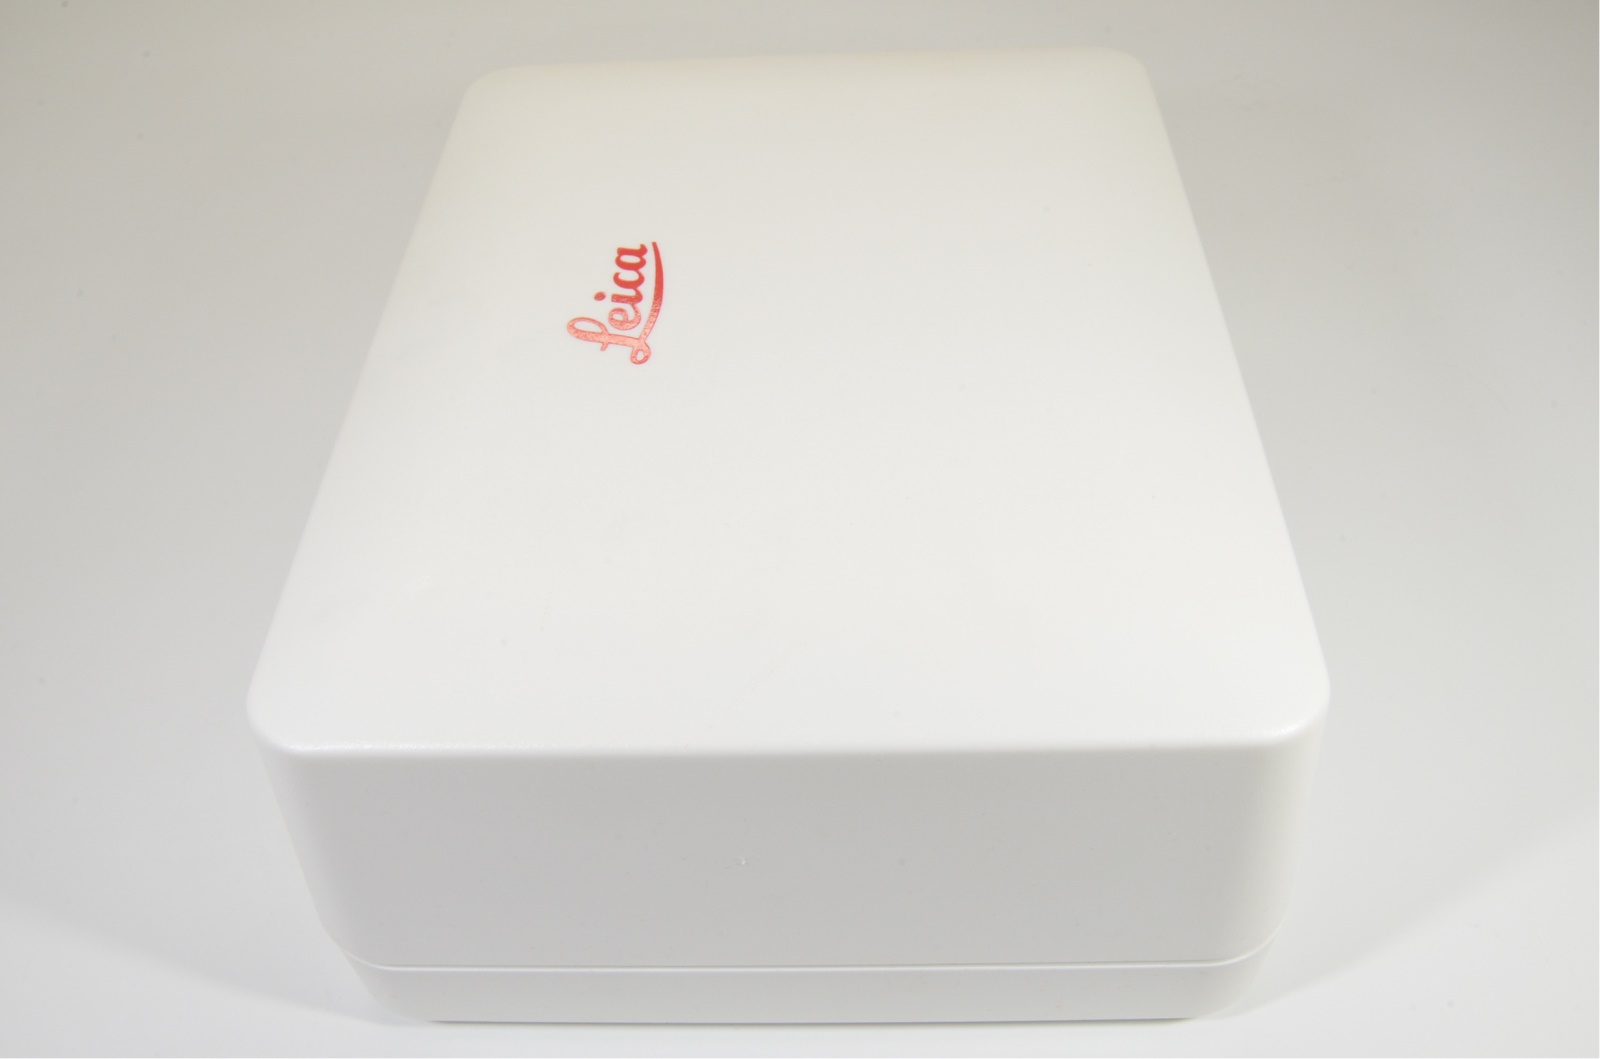 leica m6 empty box 10414, plastic case, strap, and documents from japan